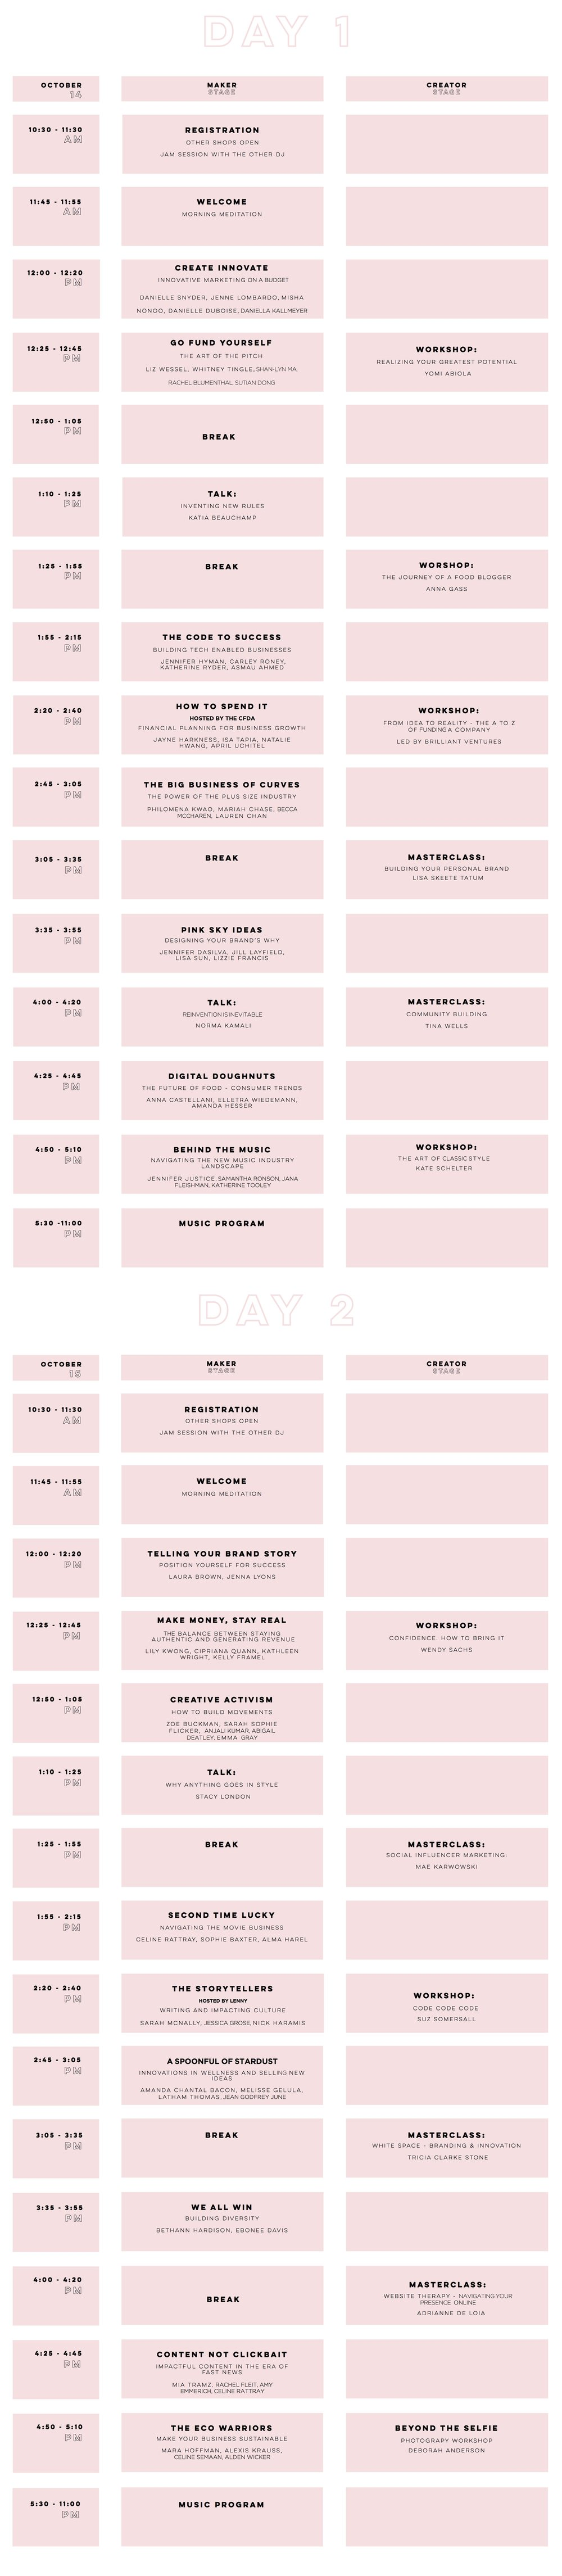 The Other Festival Schedule 2017 - Day 1&2 - 4.4.jpg